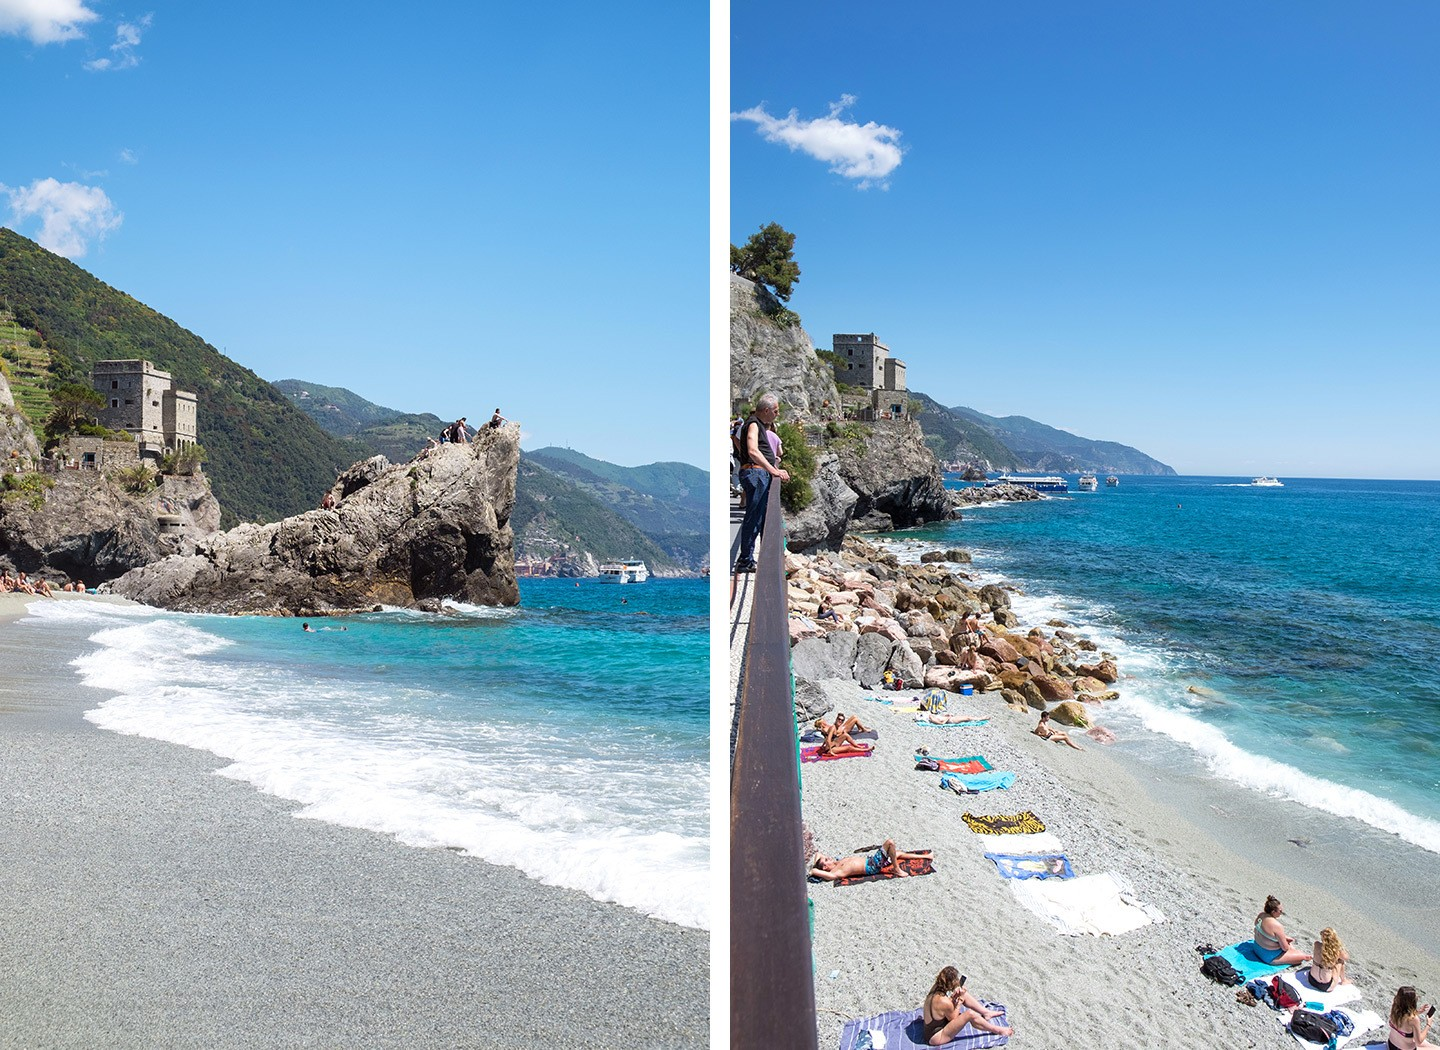 On the beach in Monterosso